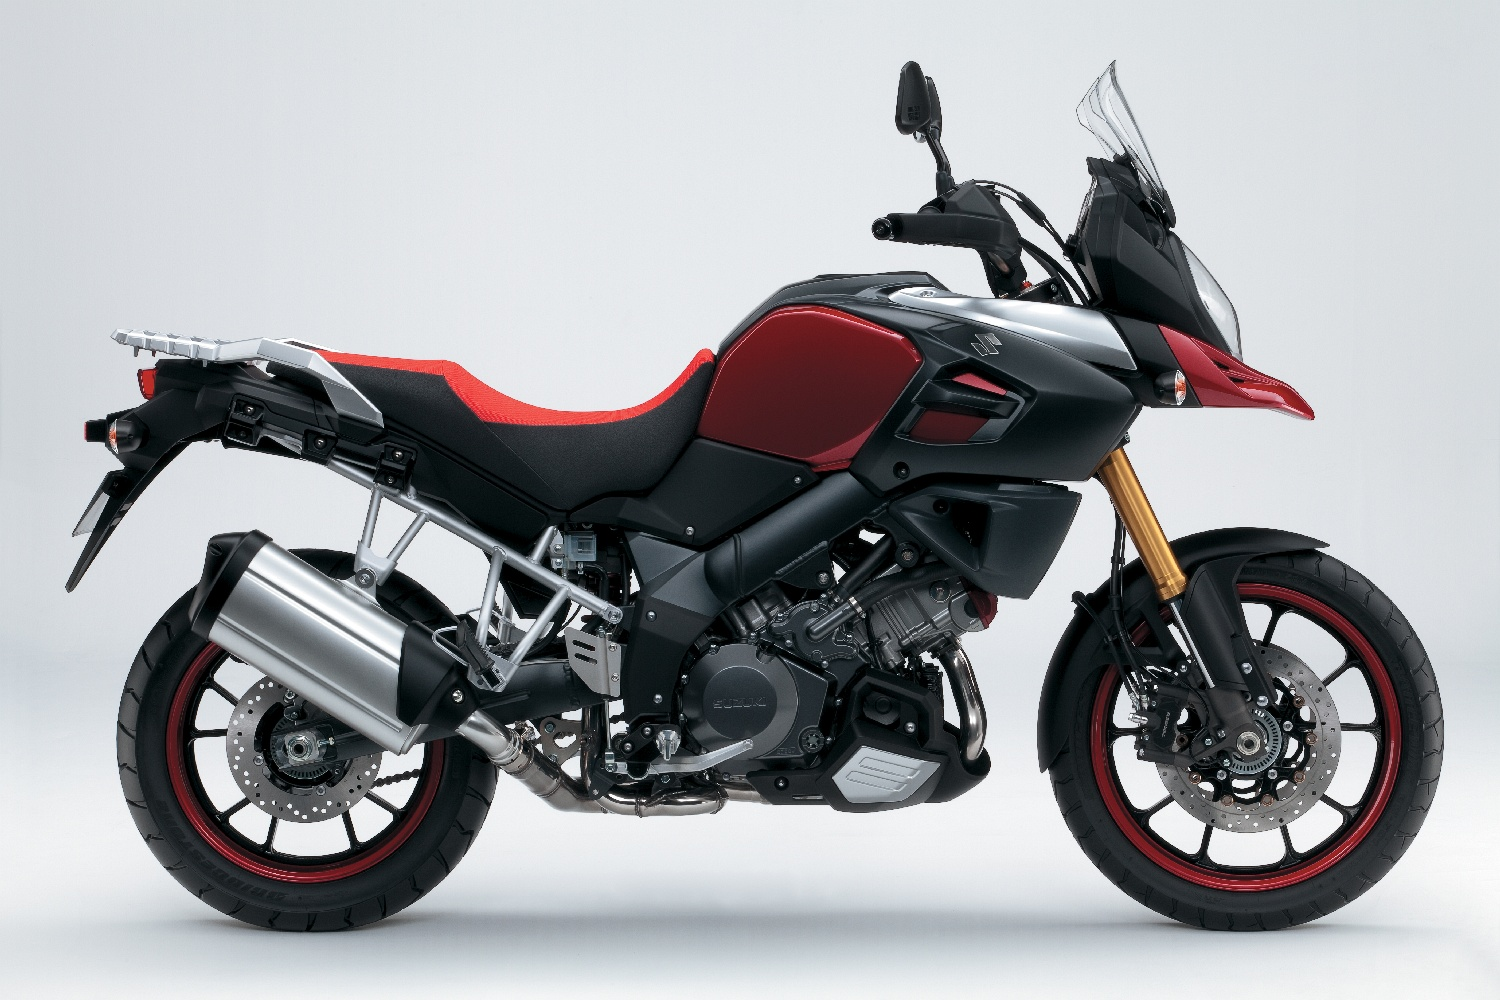 Suzuki V-Strom: the essence of riding a bike #9